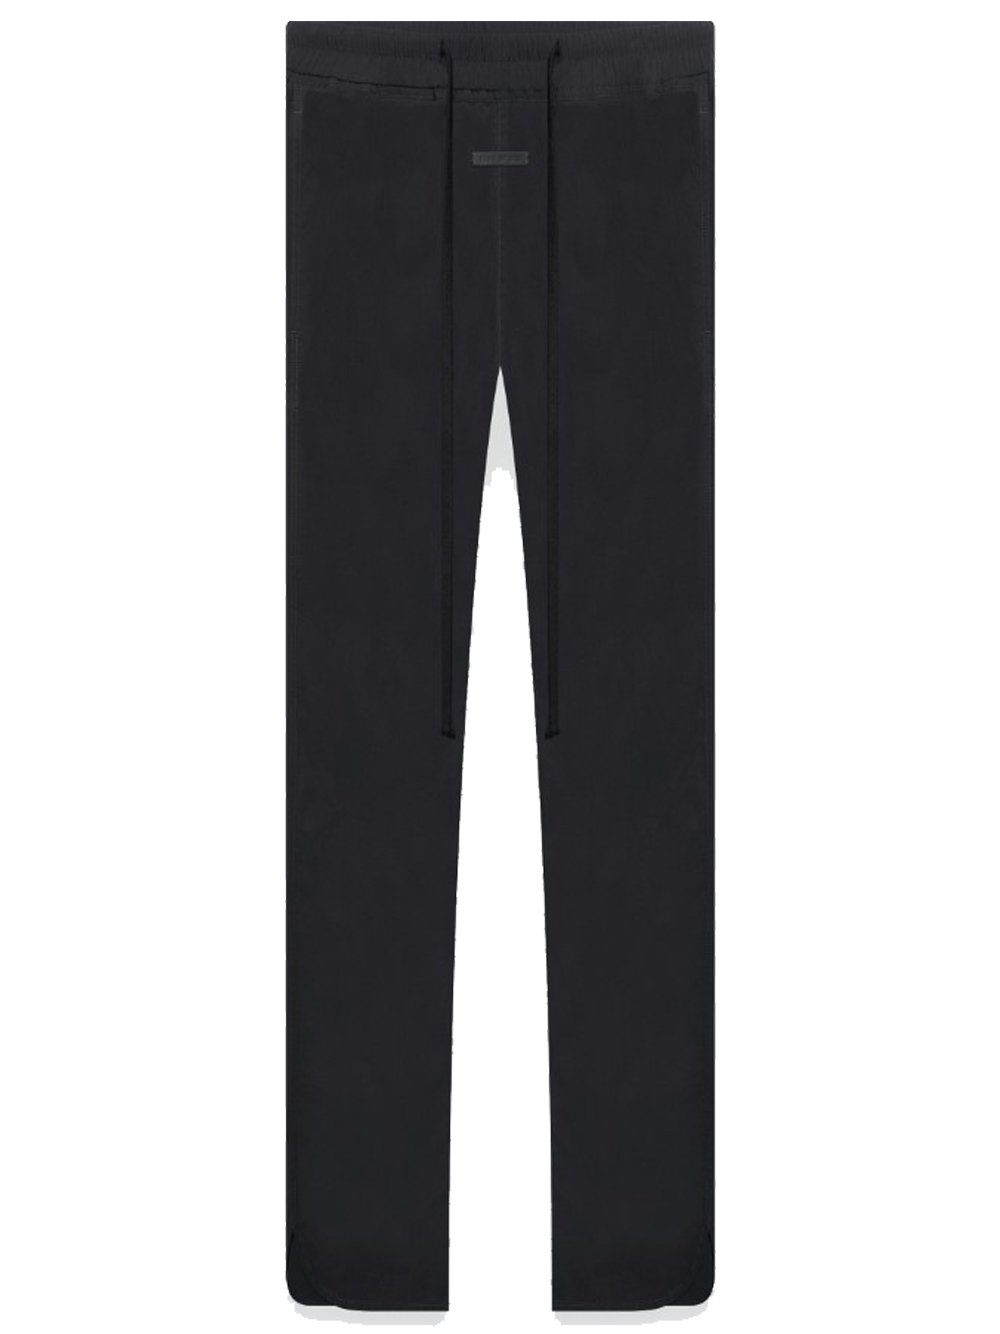 FEAR OF GOD Track Pant Black